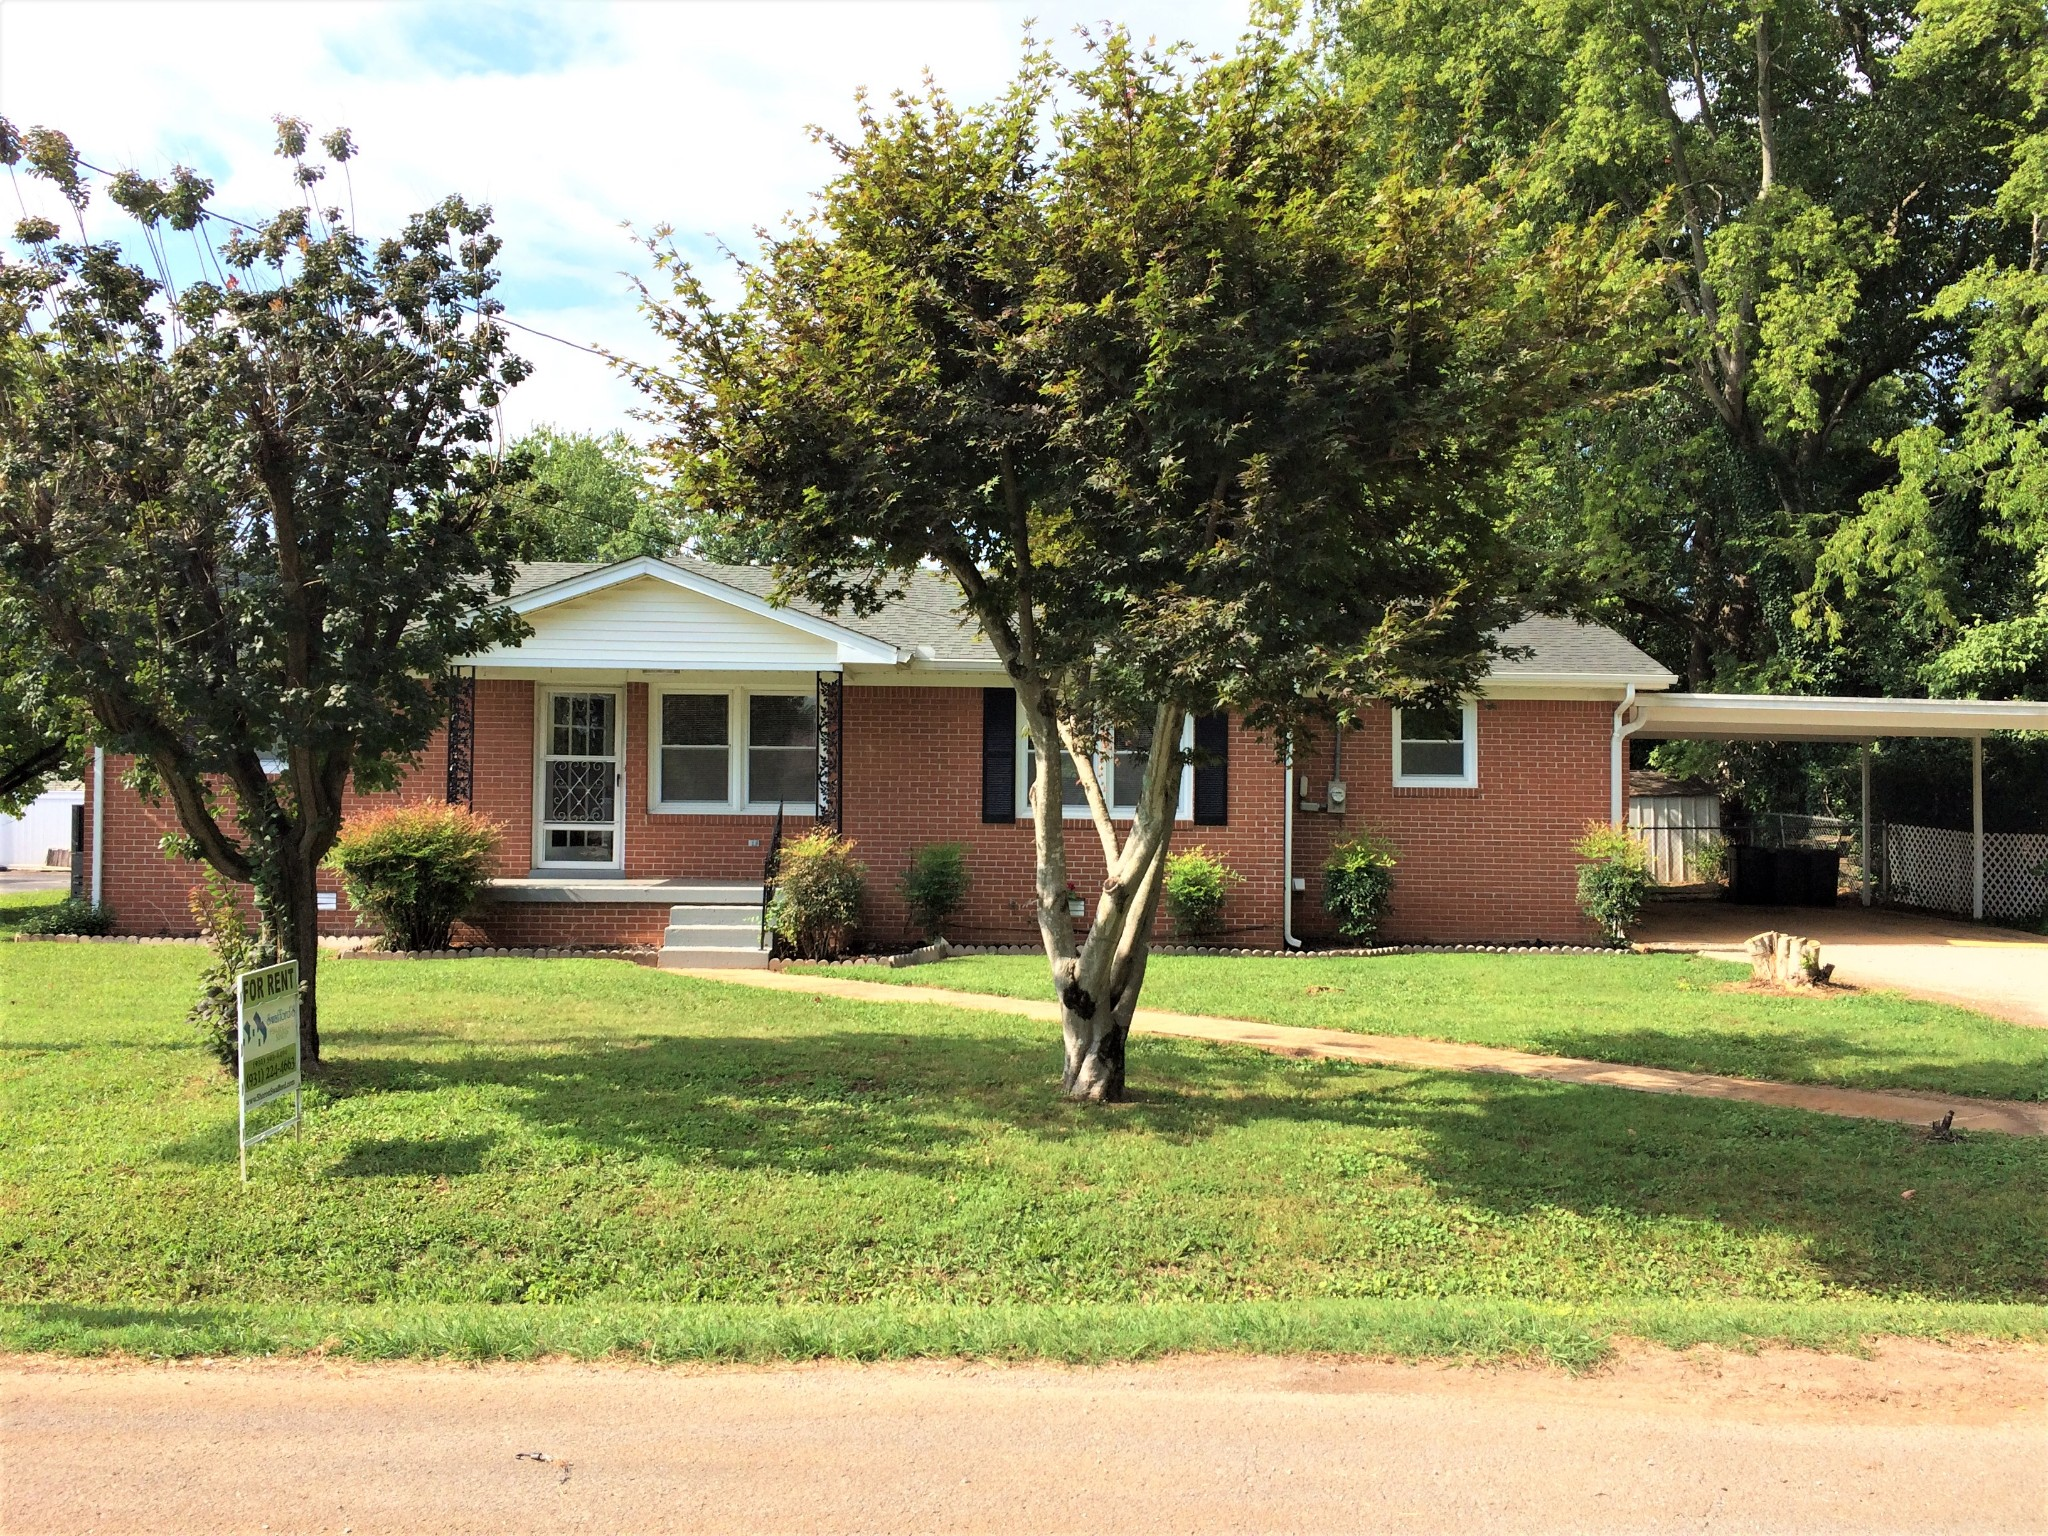 900 Henley St Property Photo - Decherd, TN real estate listing